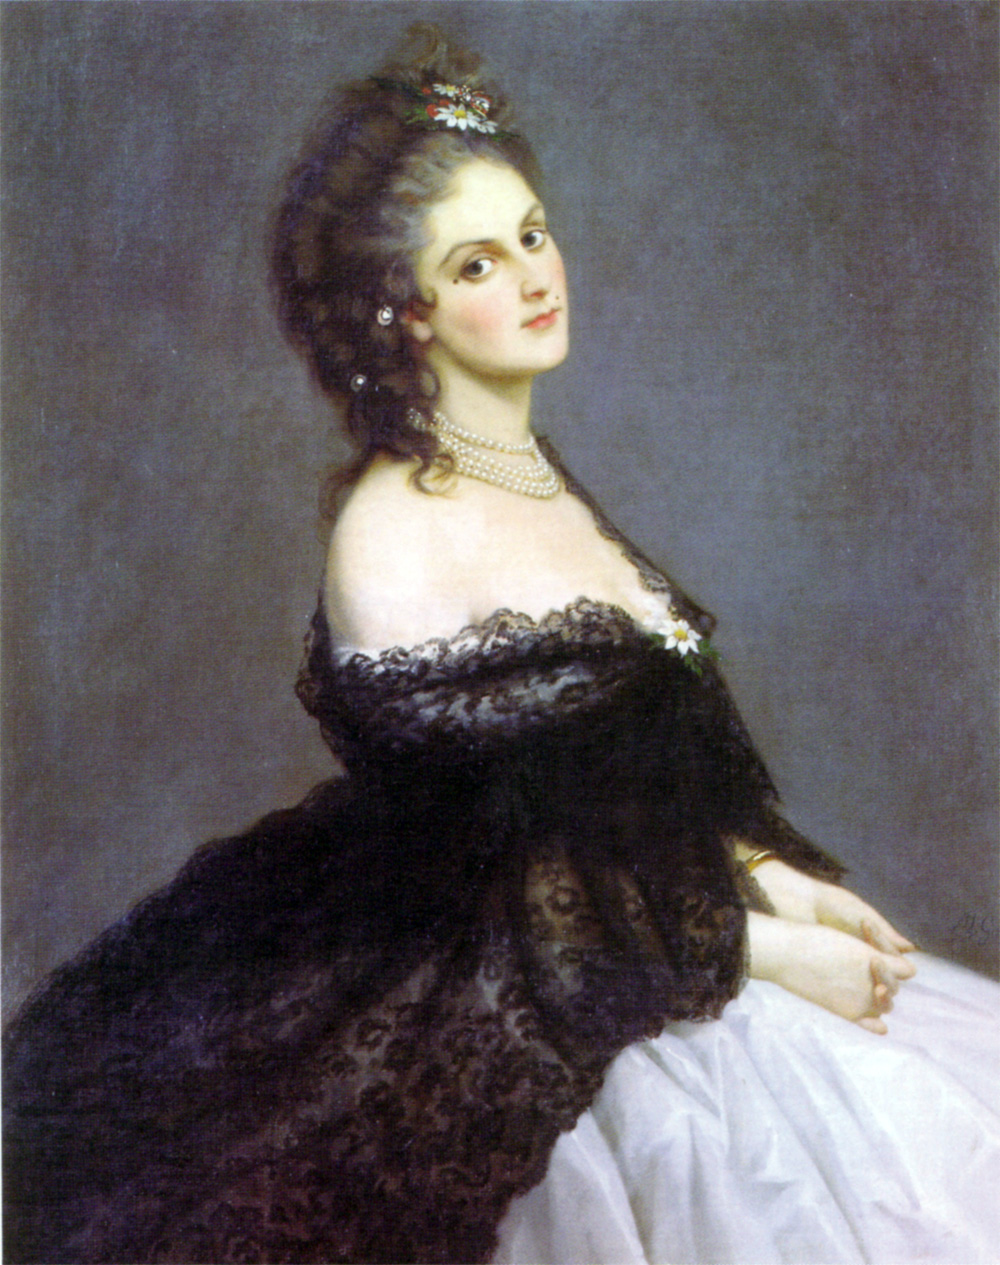 https://upload.wikimedia.org/wikipedia/commons/1/1e/Contessa_di_Castiglione.jpg